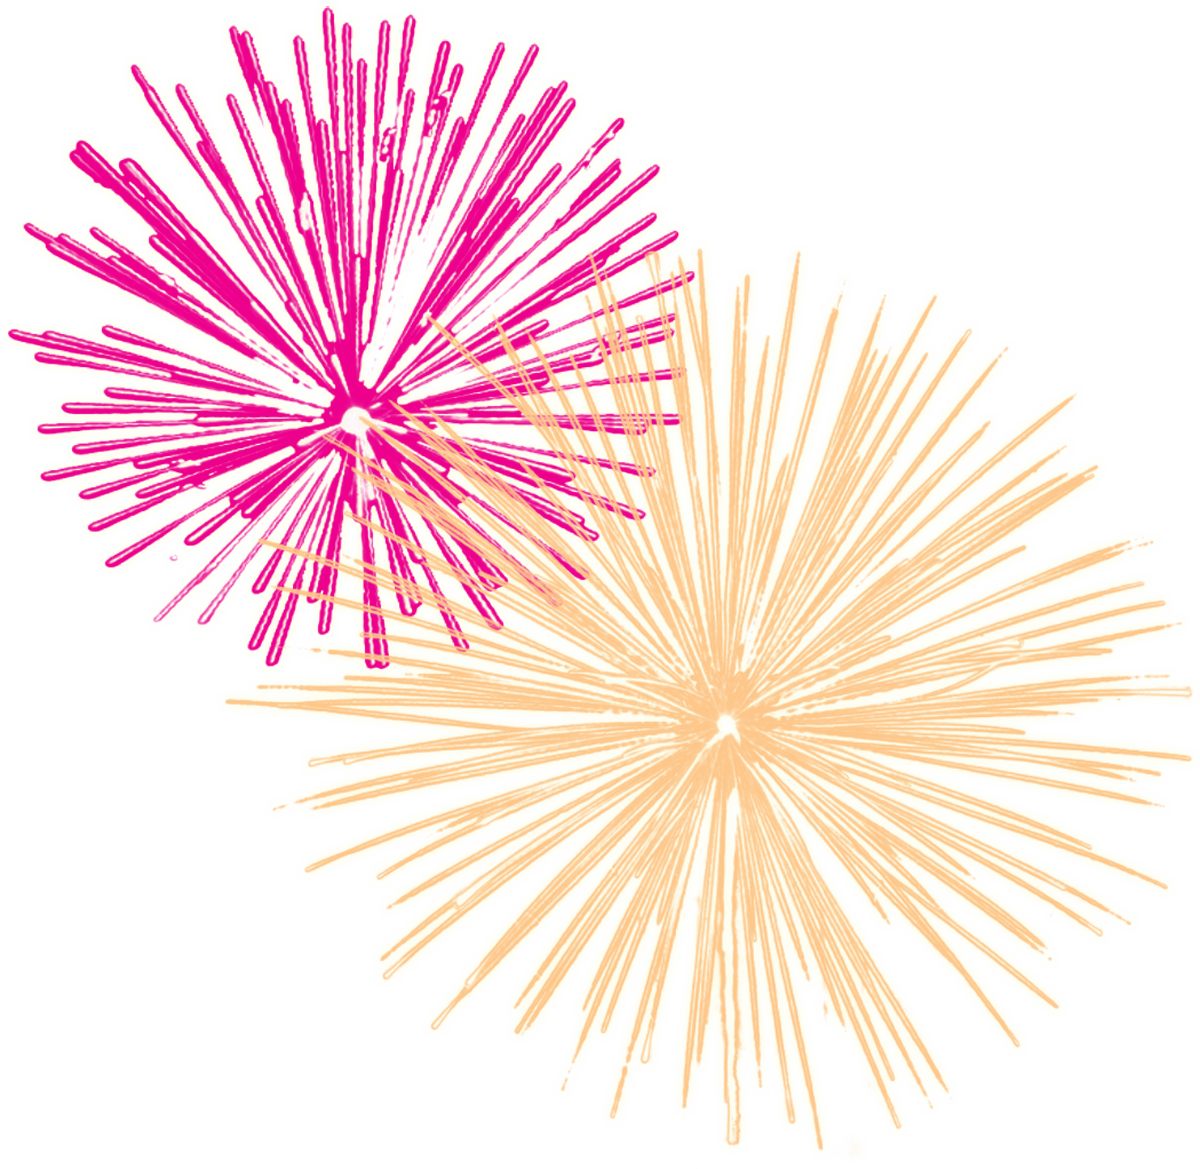 New years clip art png. Collection of year